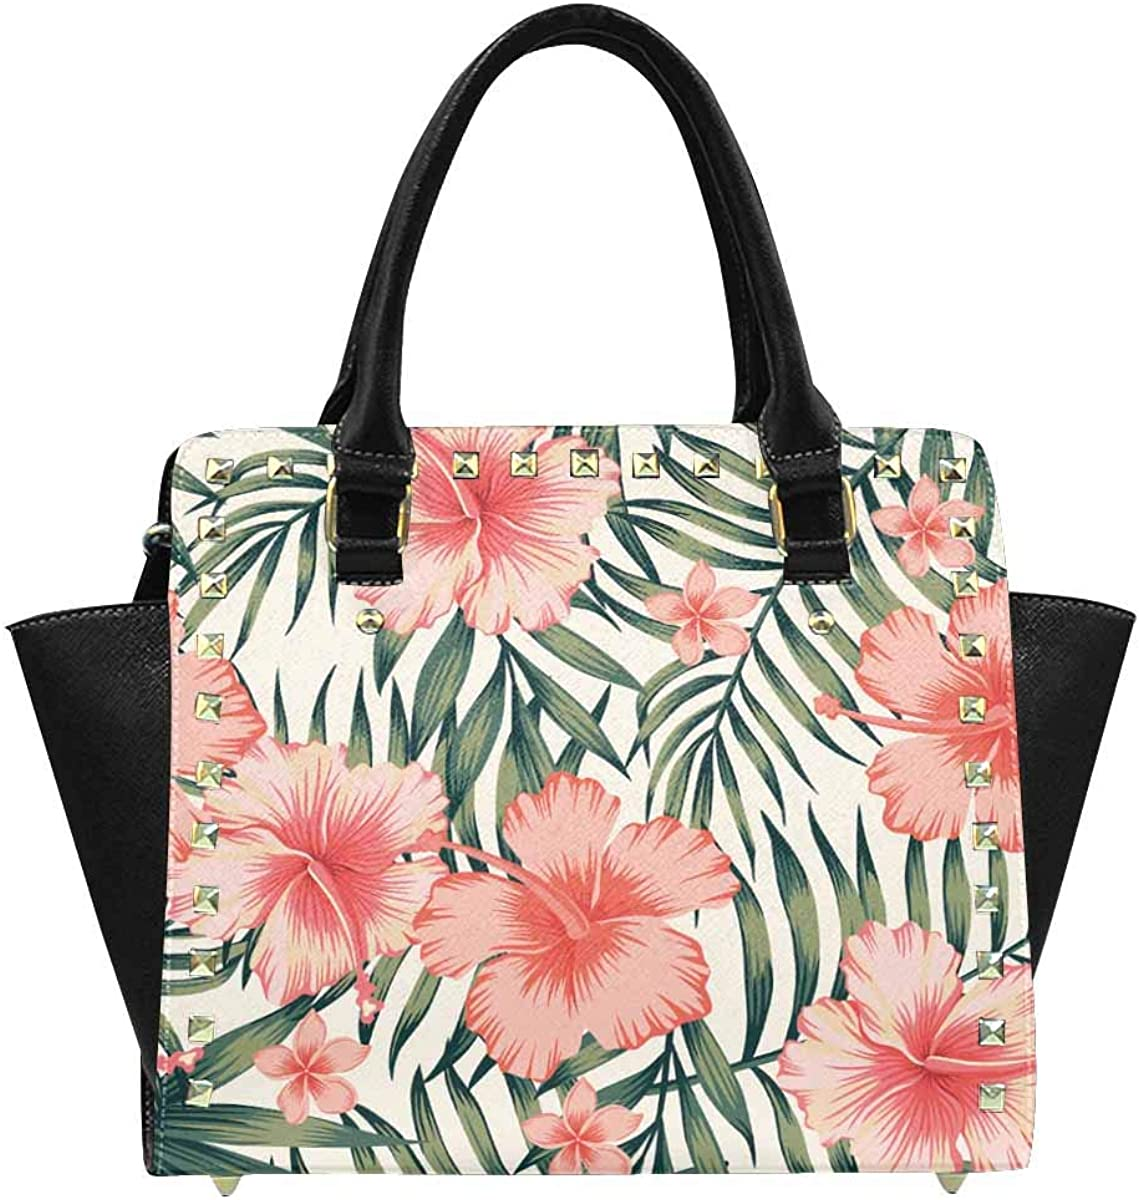 INTERESTPRINT Pink Hibiscus Palm Leaves Tote Bag with Adjustable strap